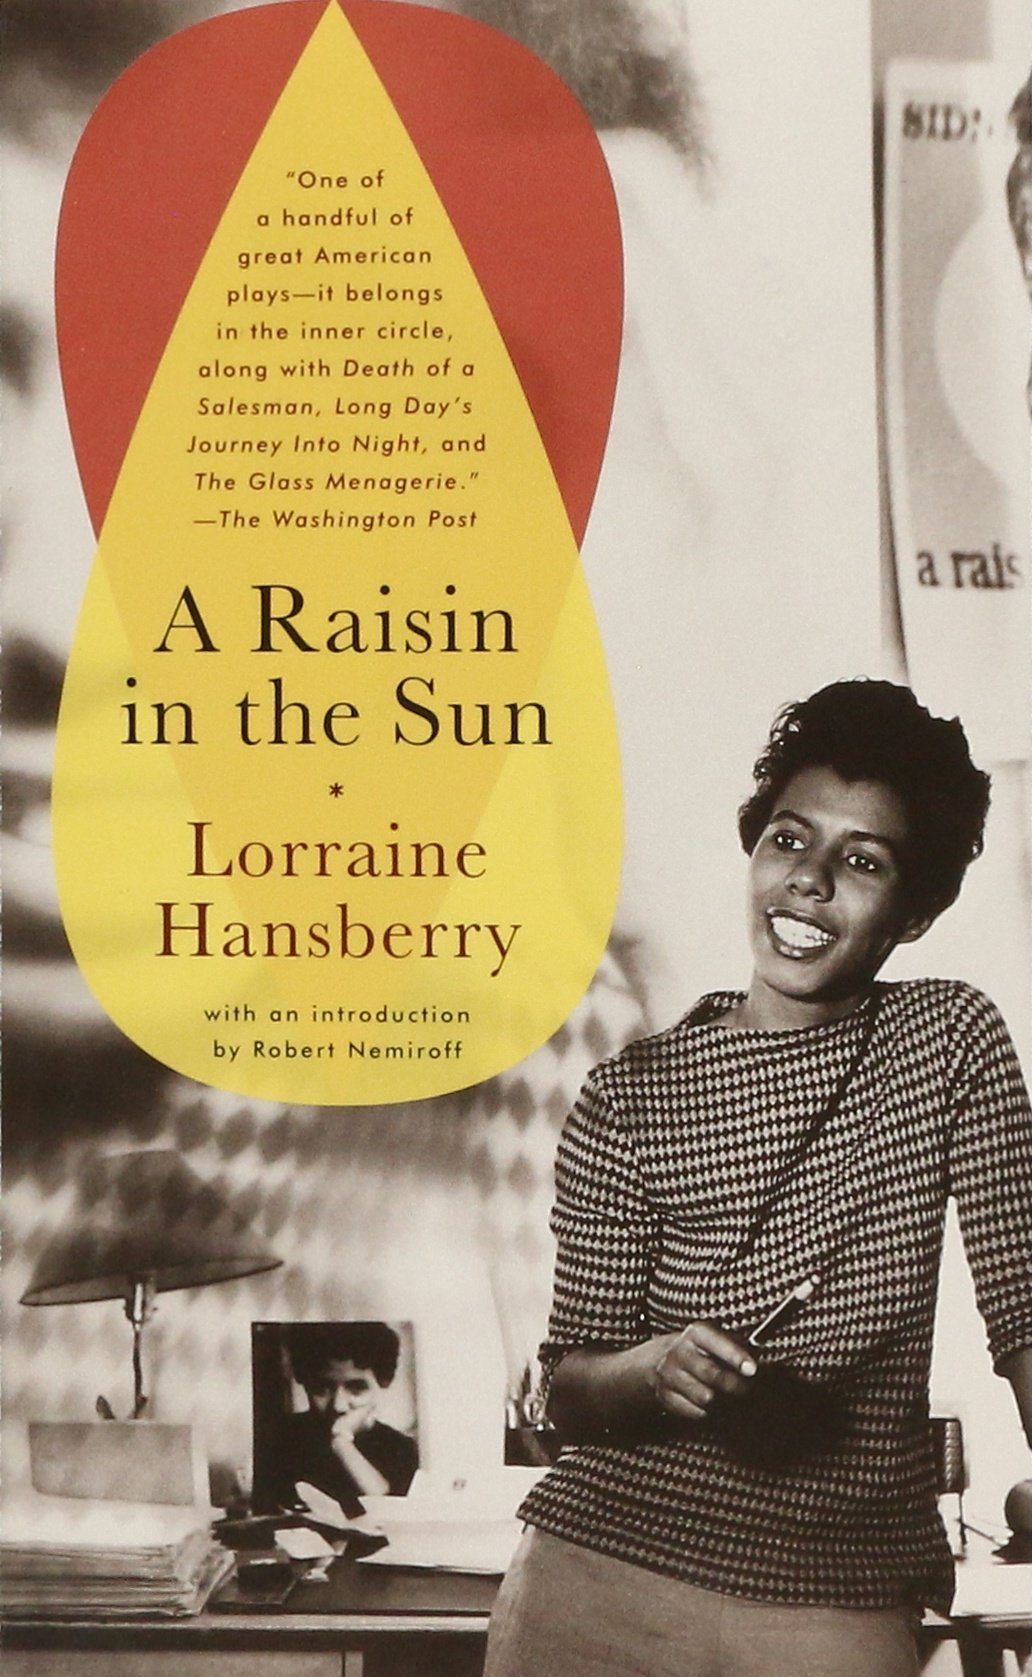 a raisin in the sun lorraine hansberry books a raisin in the sun lorraine hansberry 9780679755333 books ca